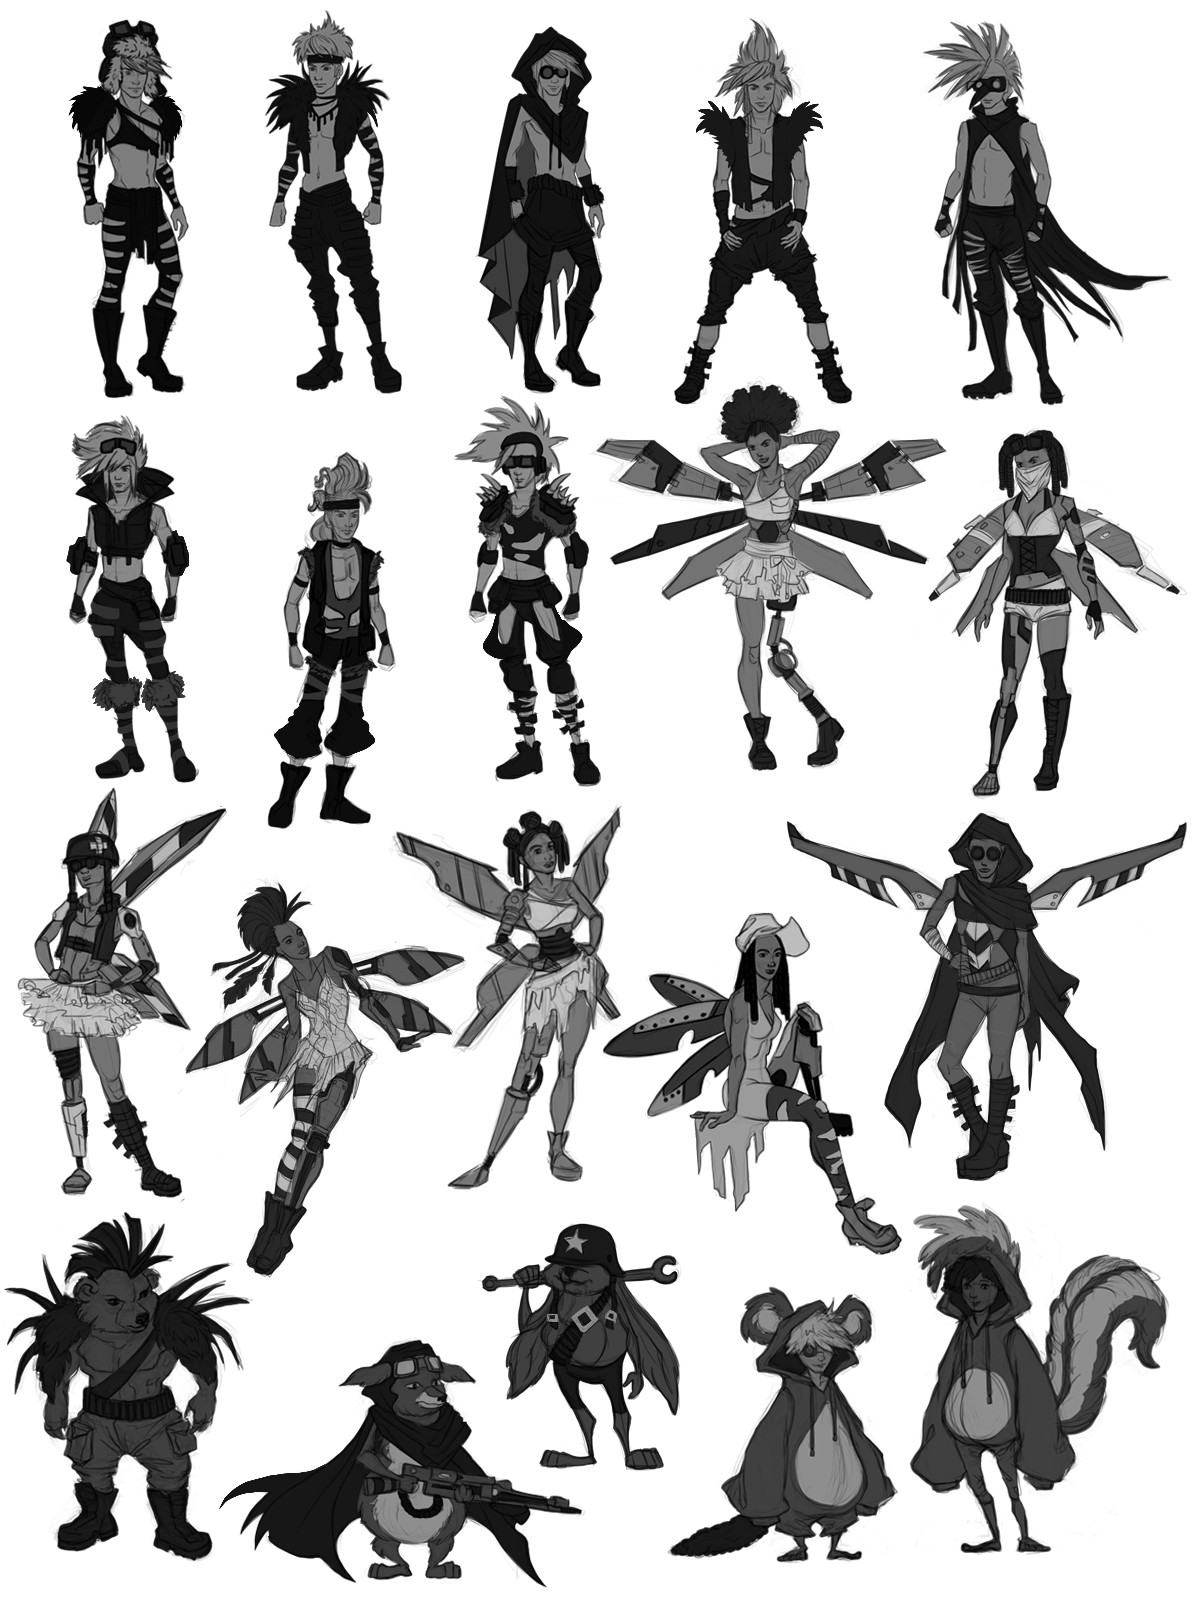 Initial thumbnails for all characters